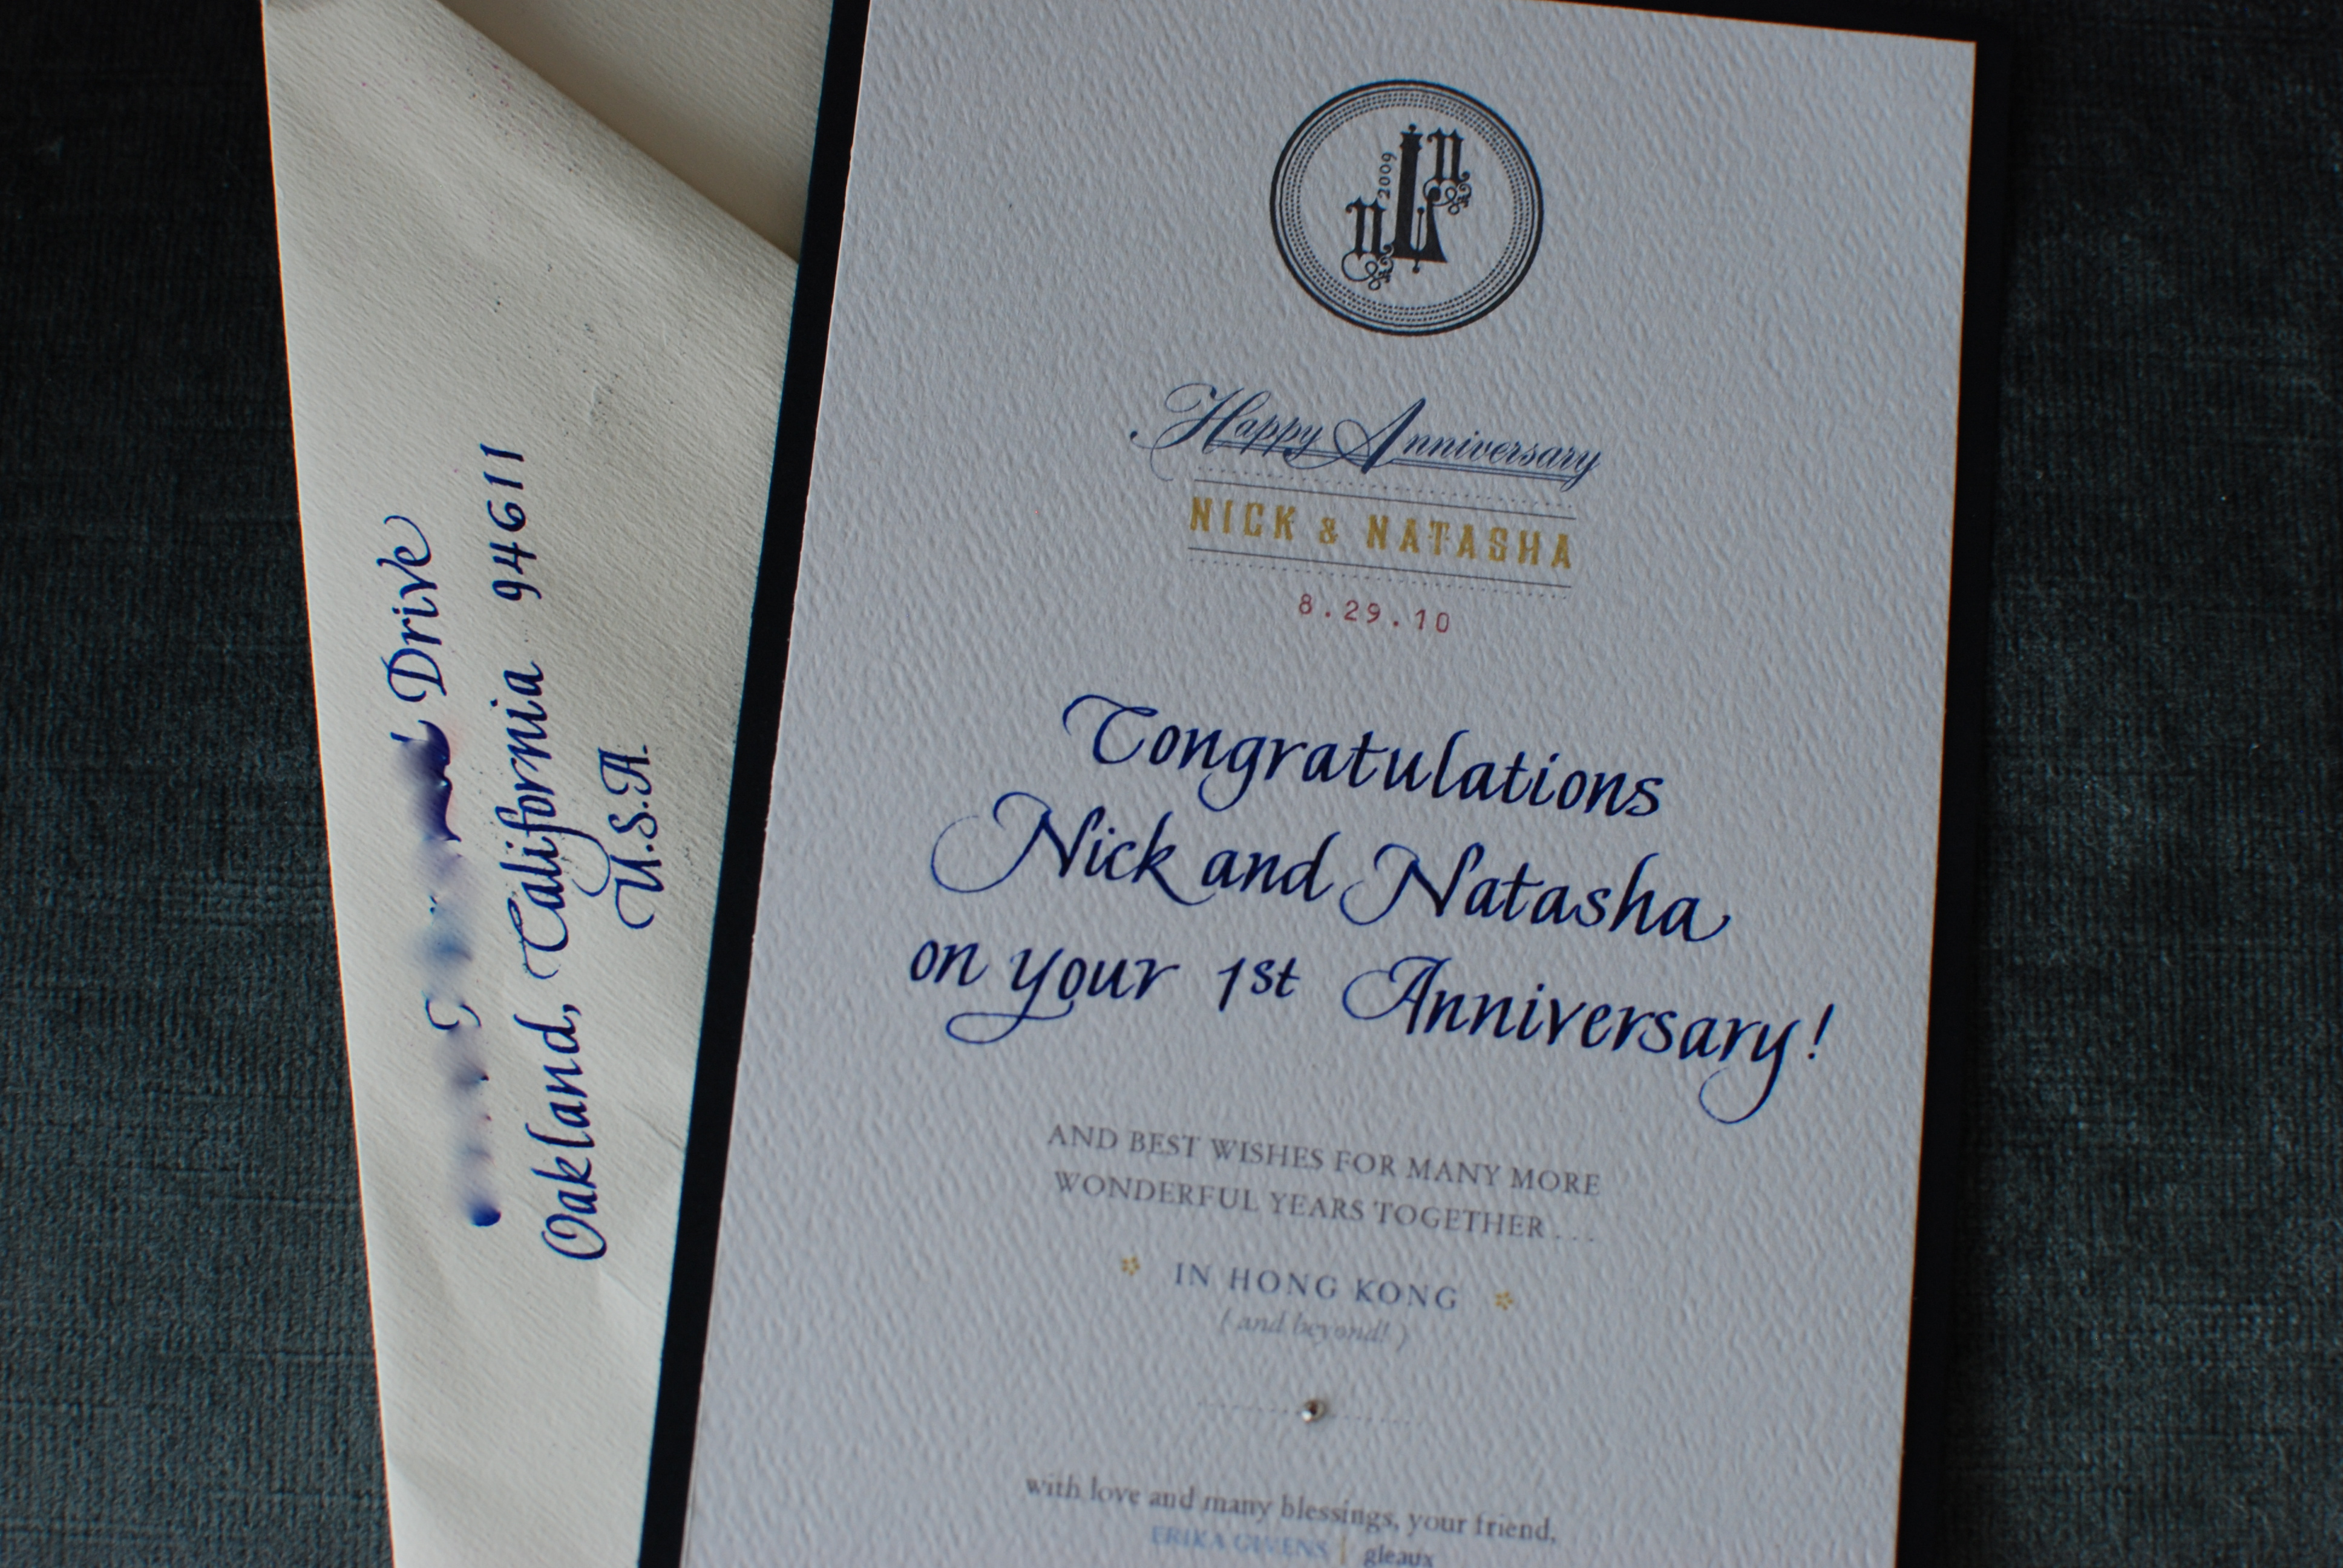 Incredible anniversary card erika has a thing for tiny jewelsthey are the perfect little touchsee that little one right under hong kong you can see how she has pulled elements stopboris Choice Image